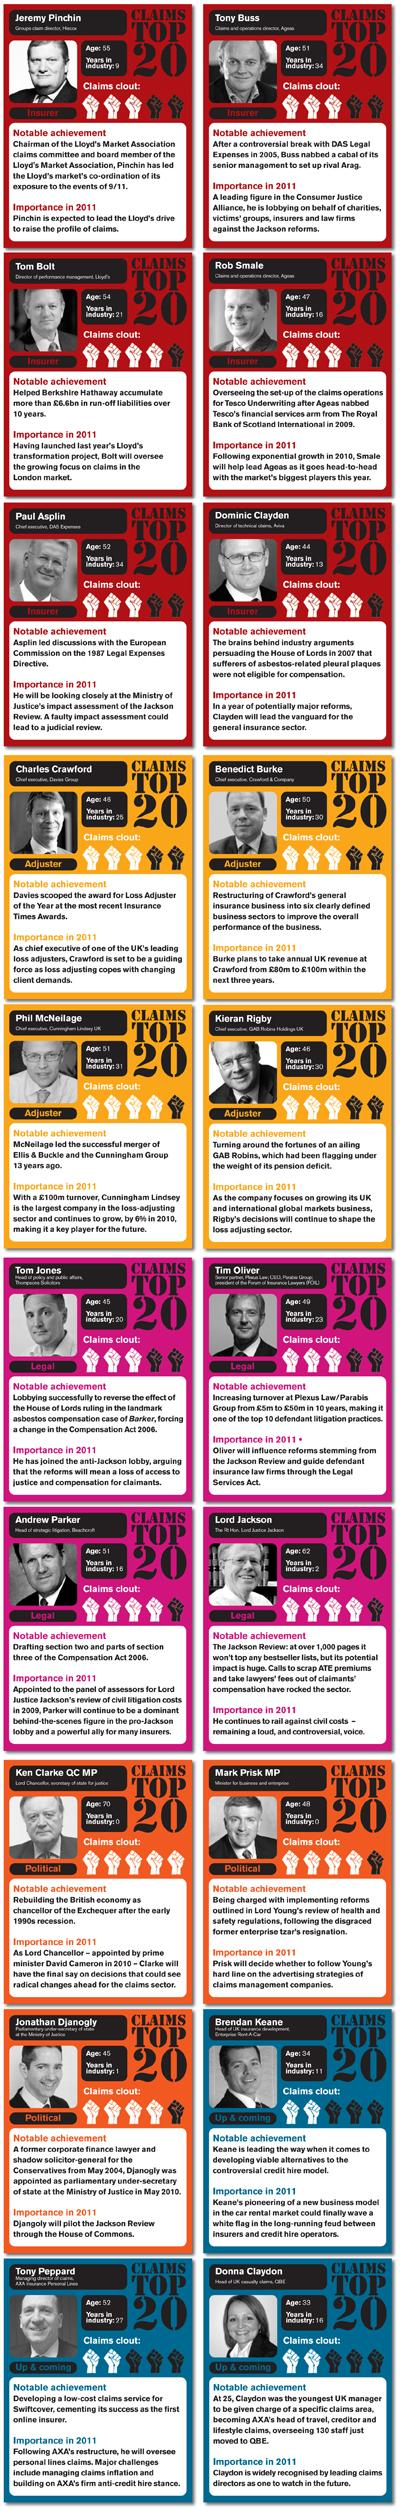 Insurance Times's top 20 personalities in claims